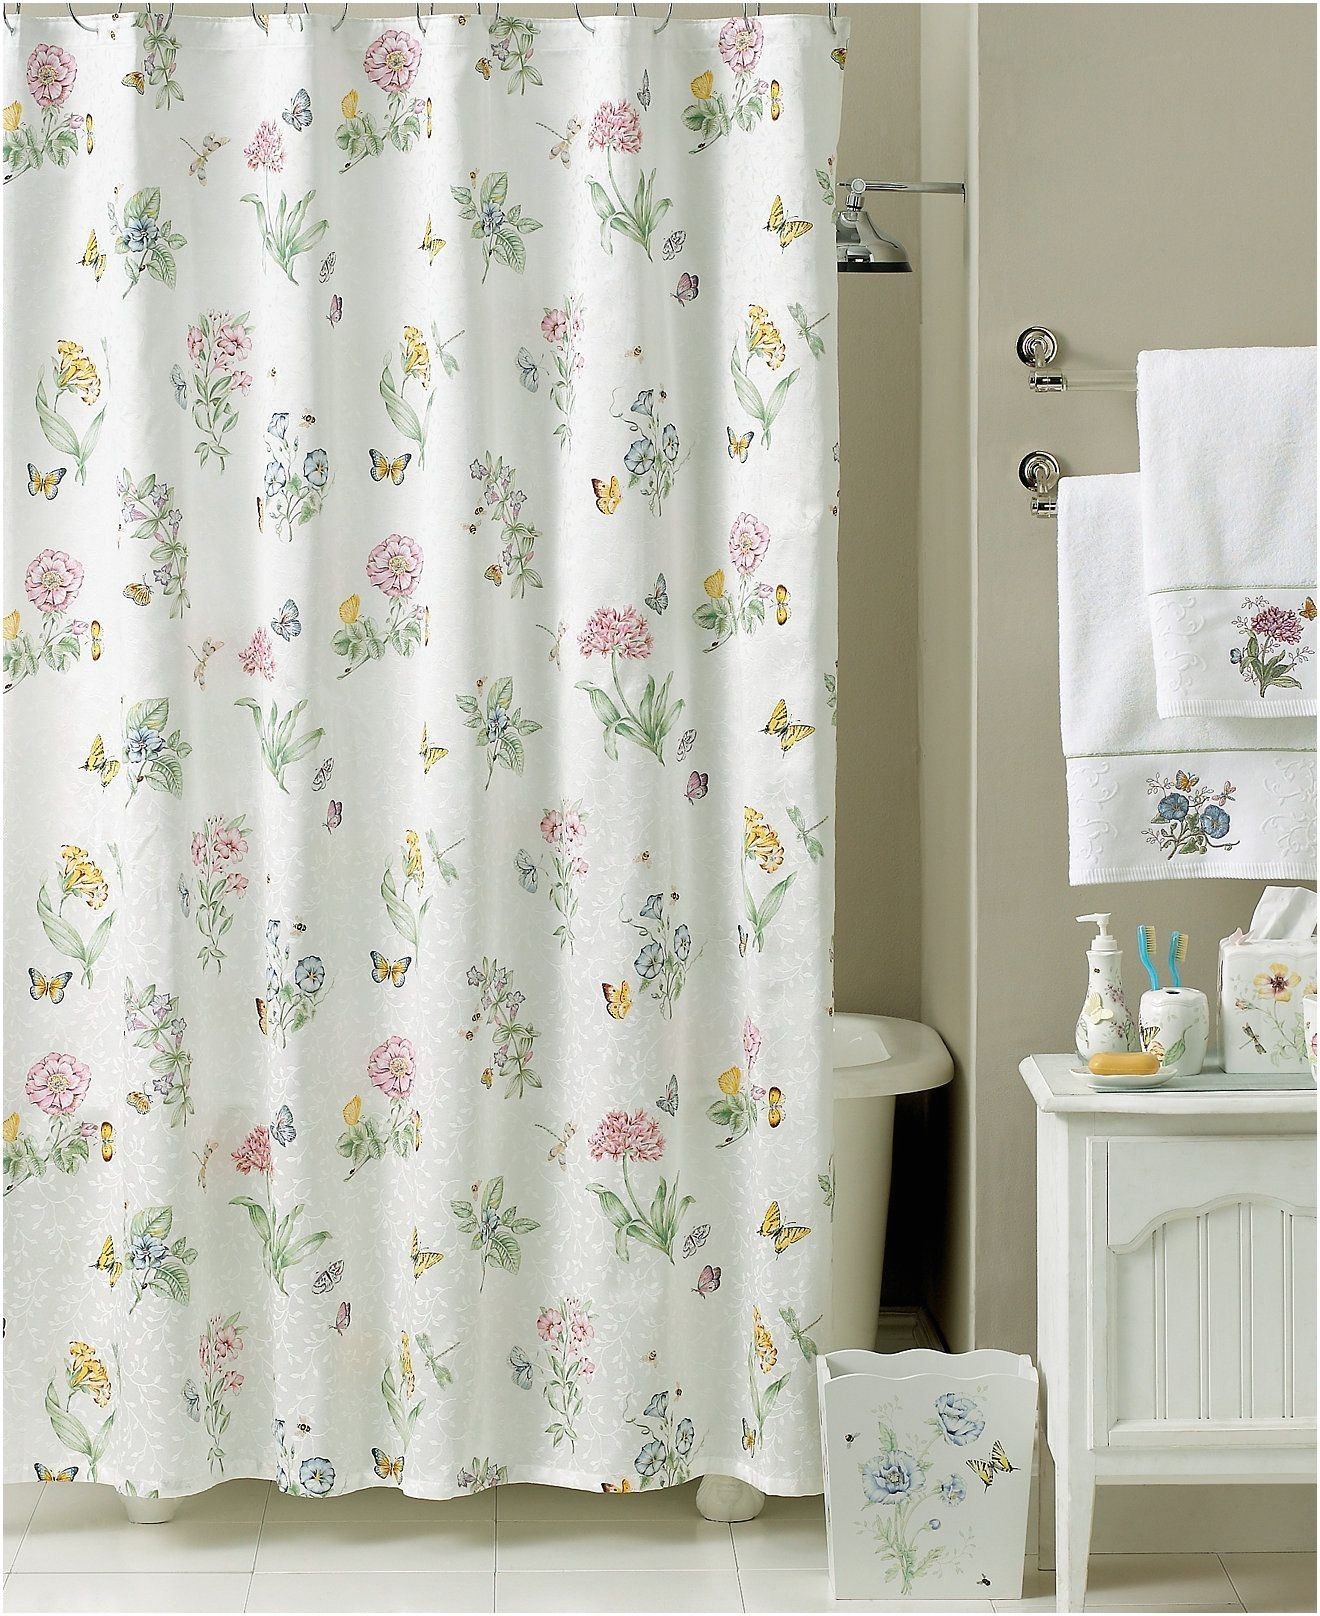 Shower Curtains at Kohls Home Design Shower Curtains at Kohls Awesome butterfly Meadow